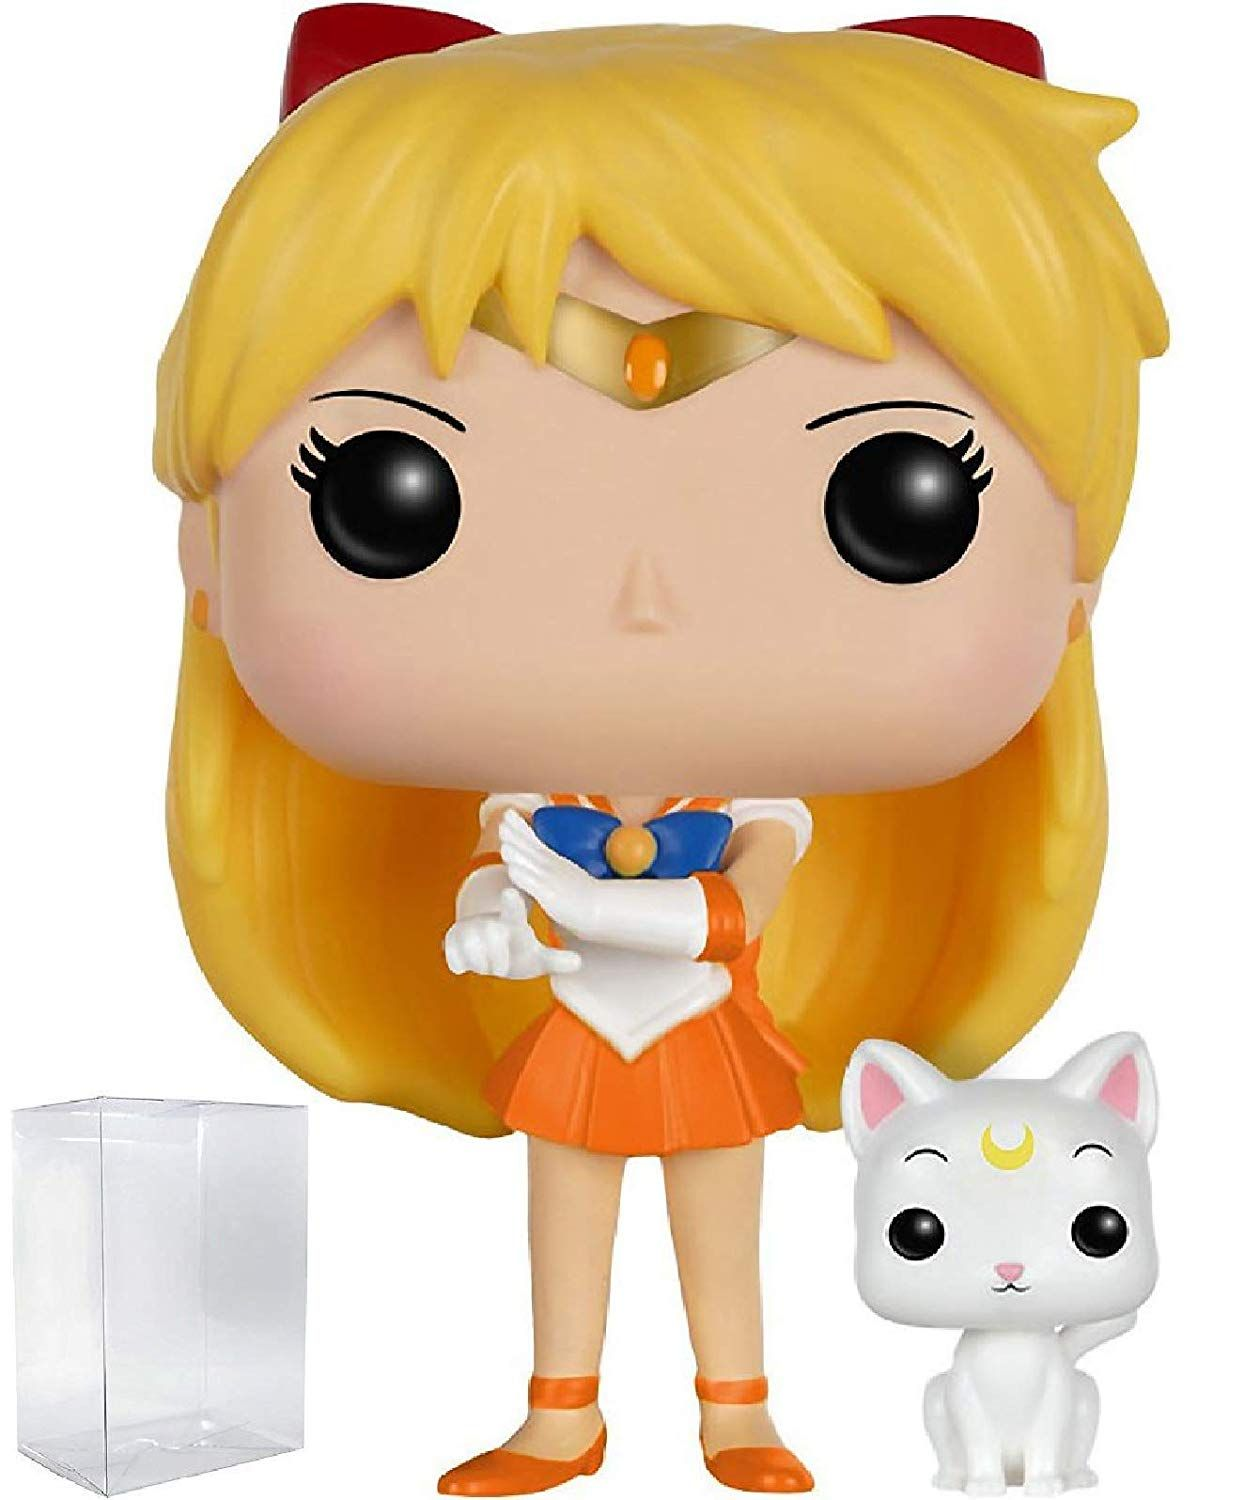 Pin by MADAME + ROYALE on Sailor Moon Funko pop anime